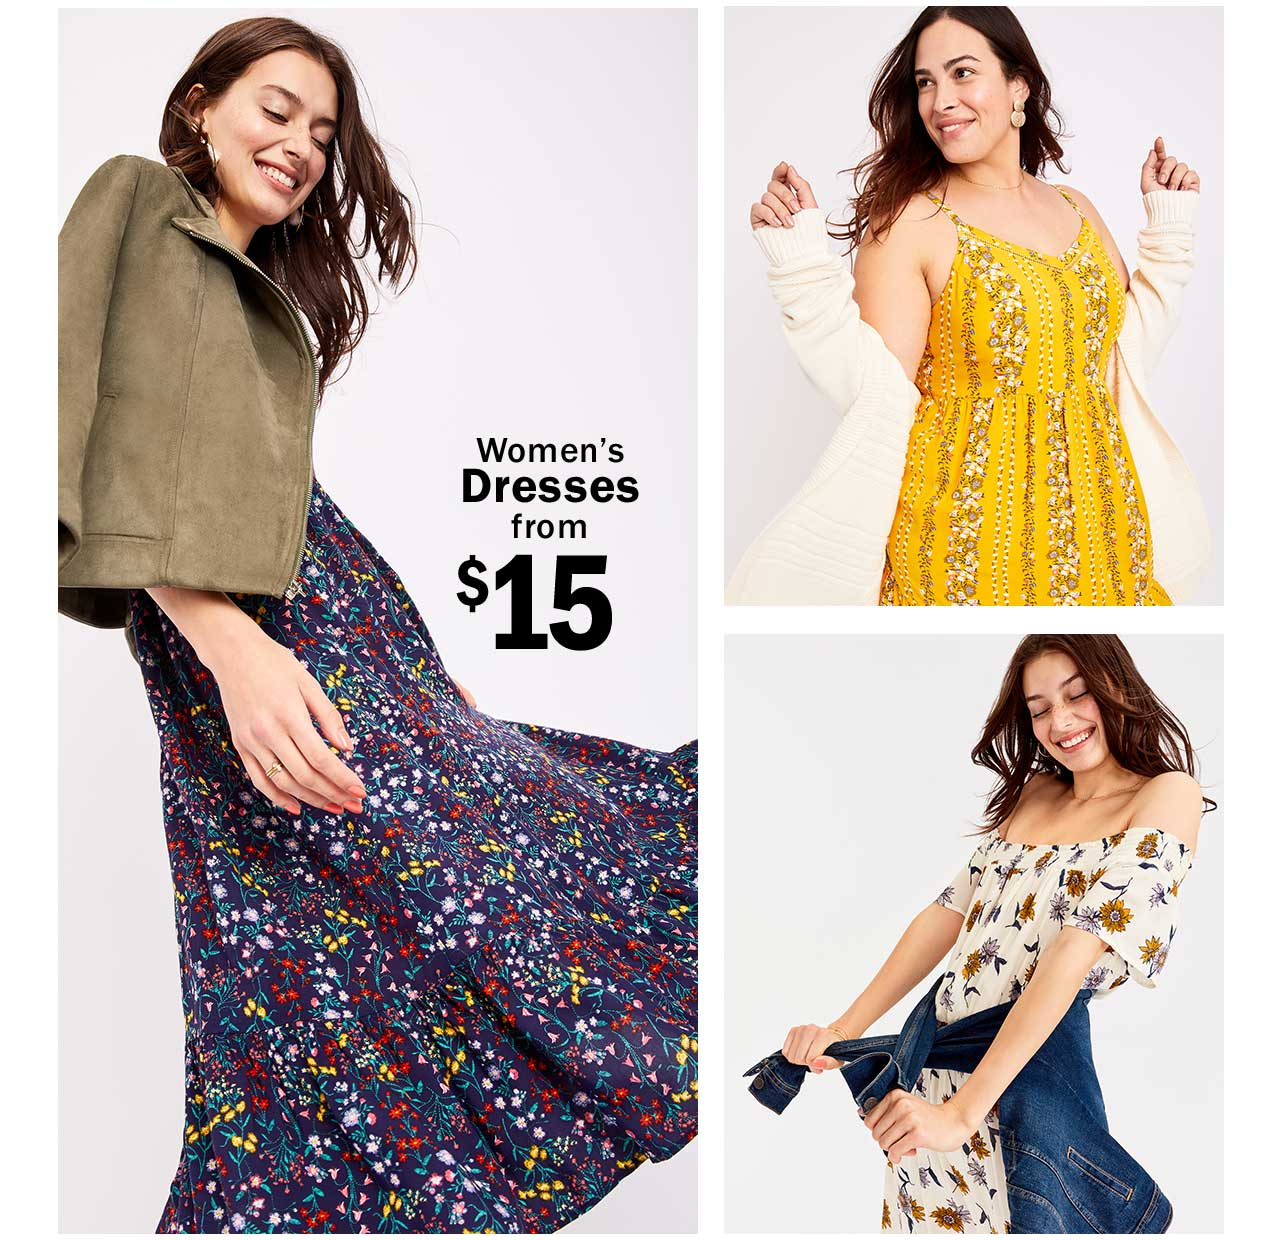 Women's Dresses from $15